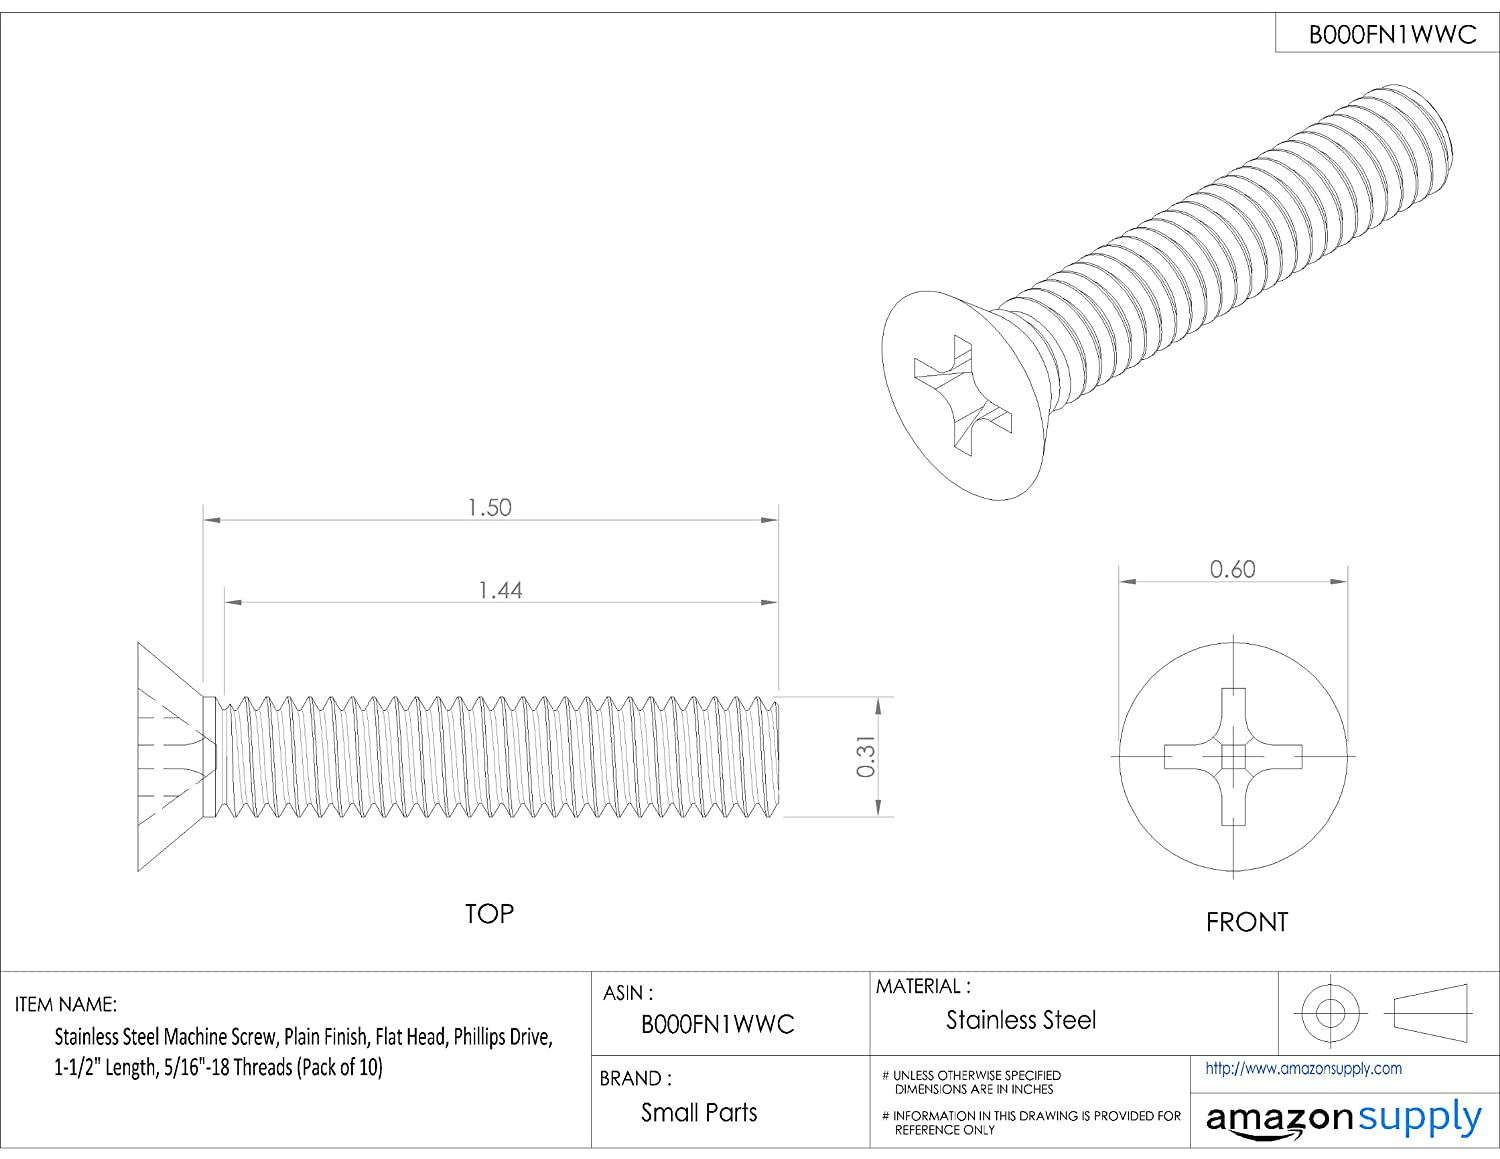 Small Parts B000FN1WWC Pack of 10 Flat Head Plain Finish Stainless Steel Machine Screw 1-1//2 Length 5//16-18 Threads Phillips Drive Pack of 10 1-1//2 Length 5//16-18 Threads